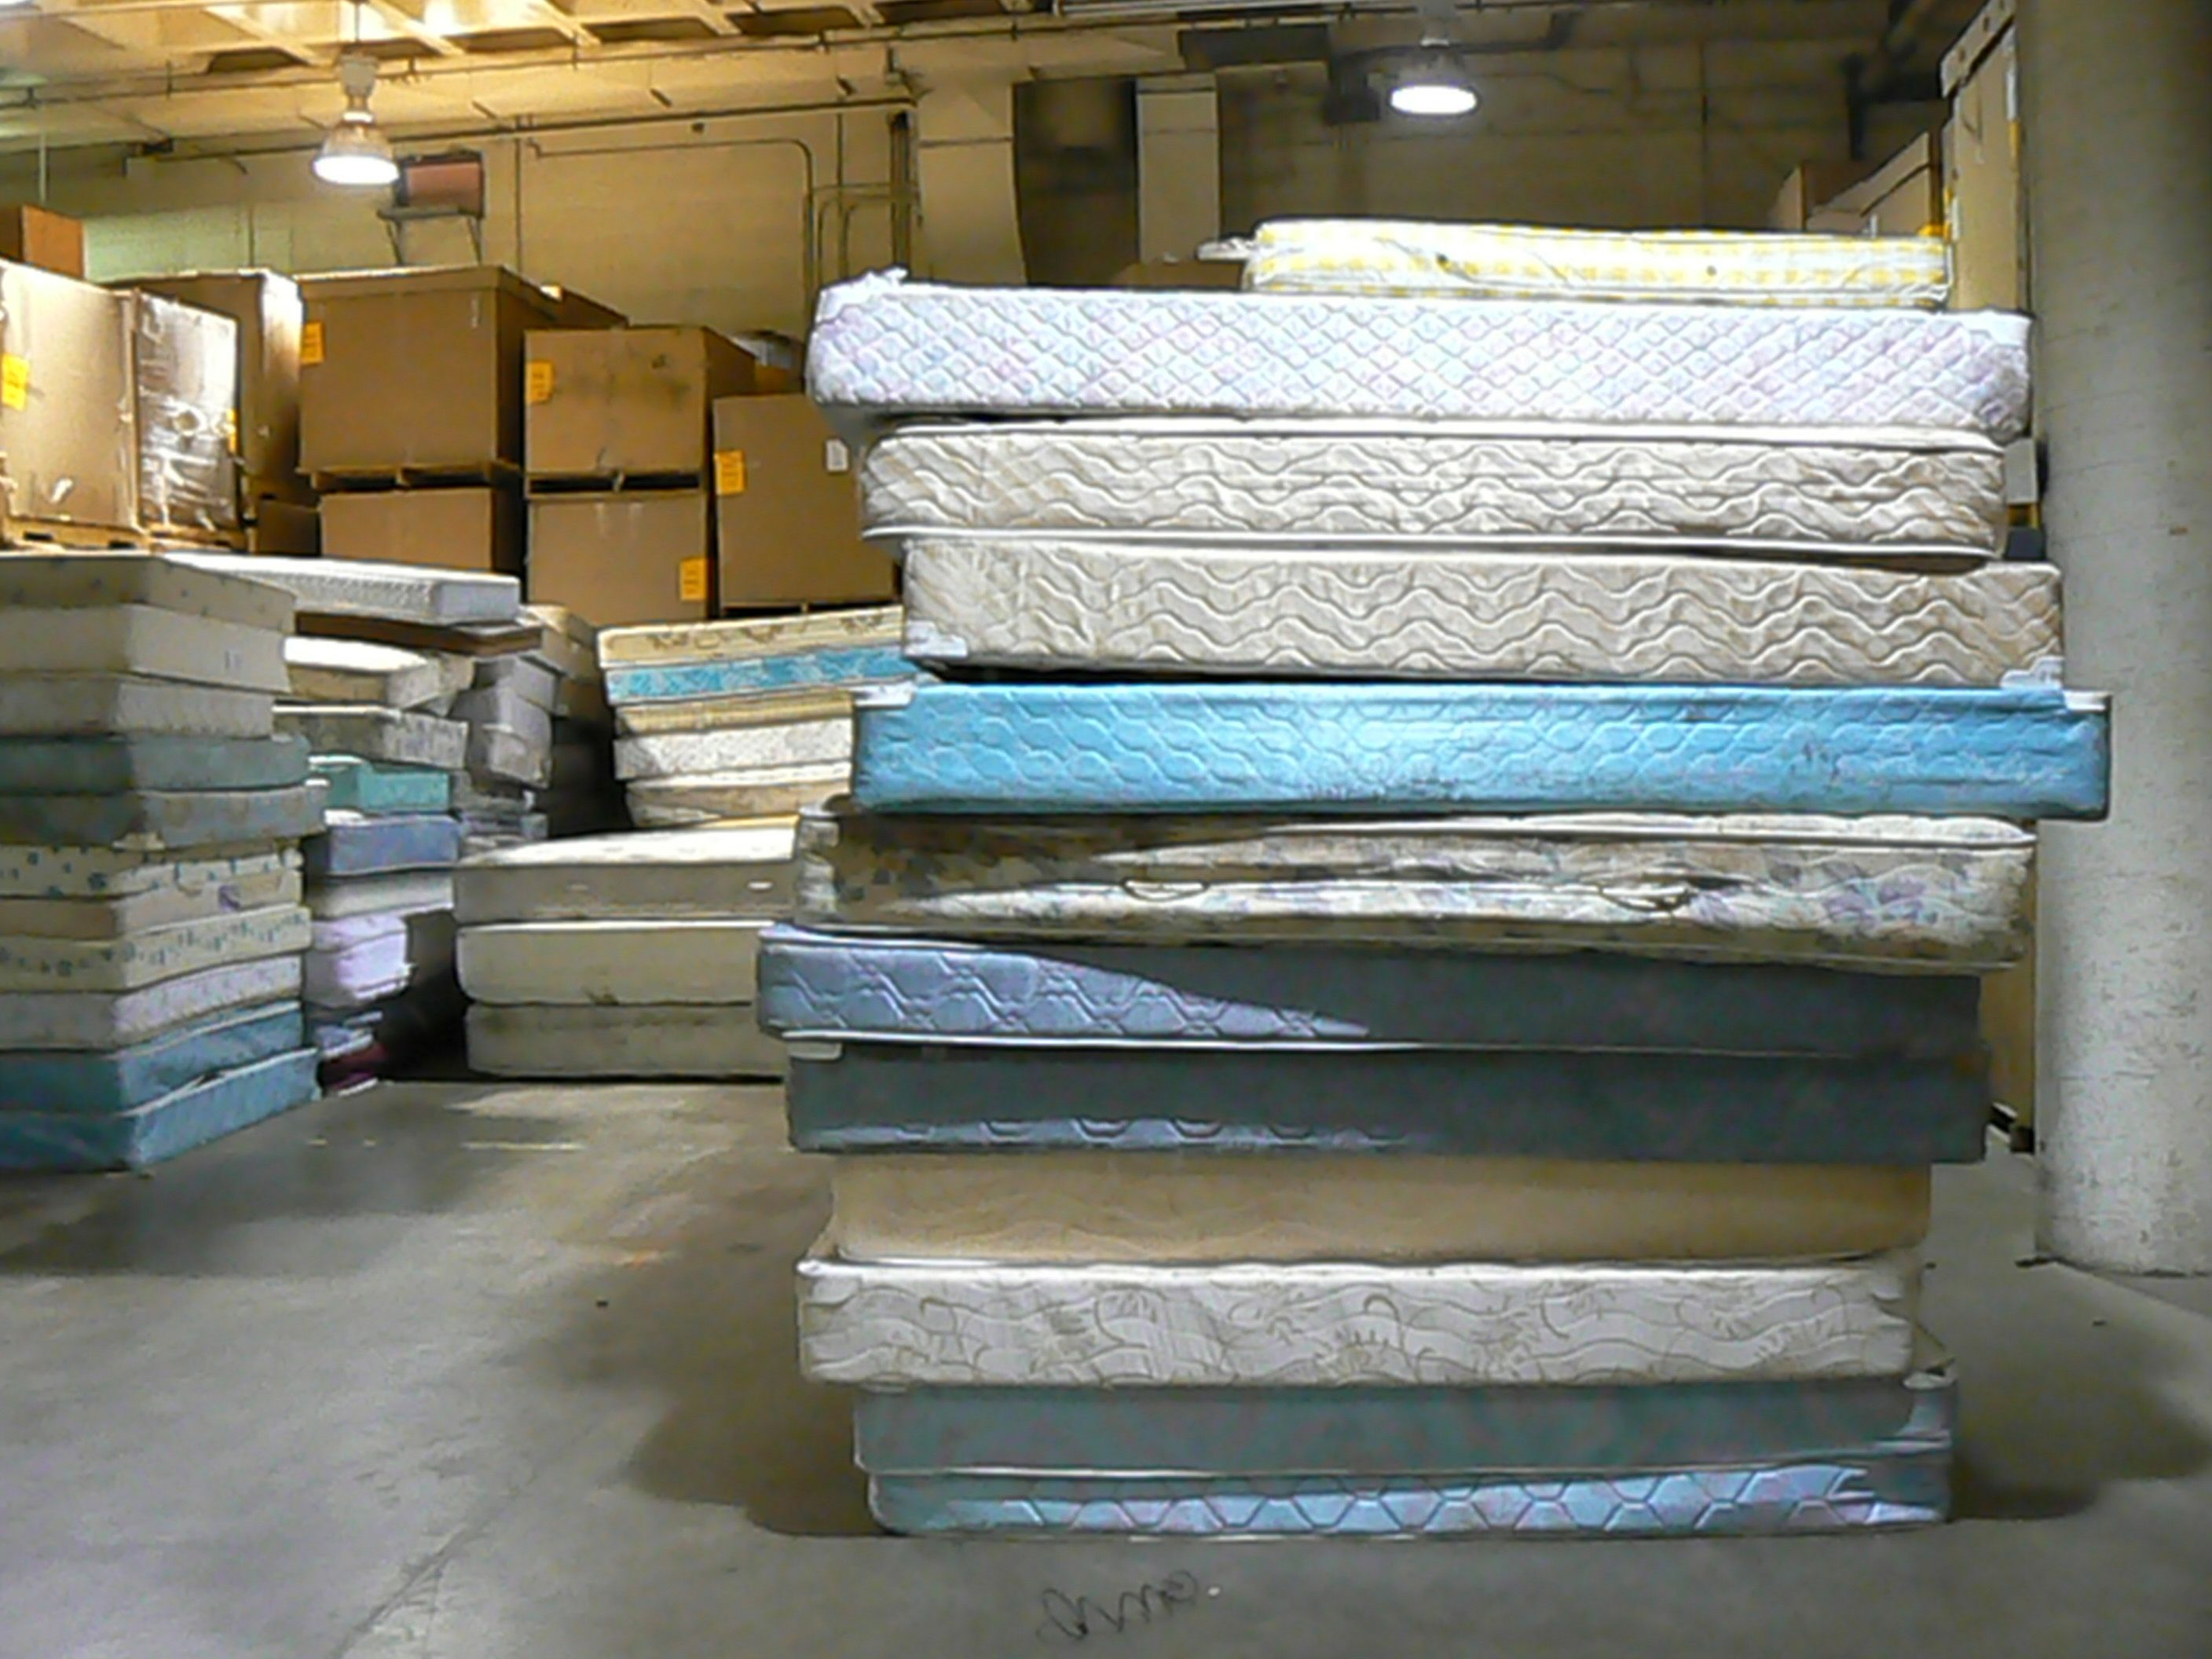 recycling of brilliant full mattress removal king mefree near ideas size me free picture